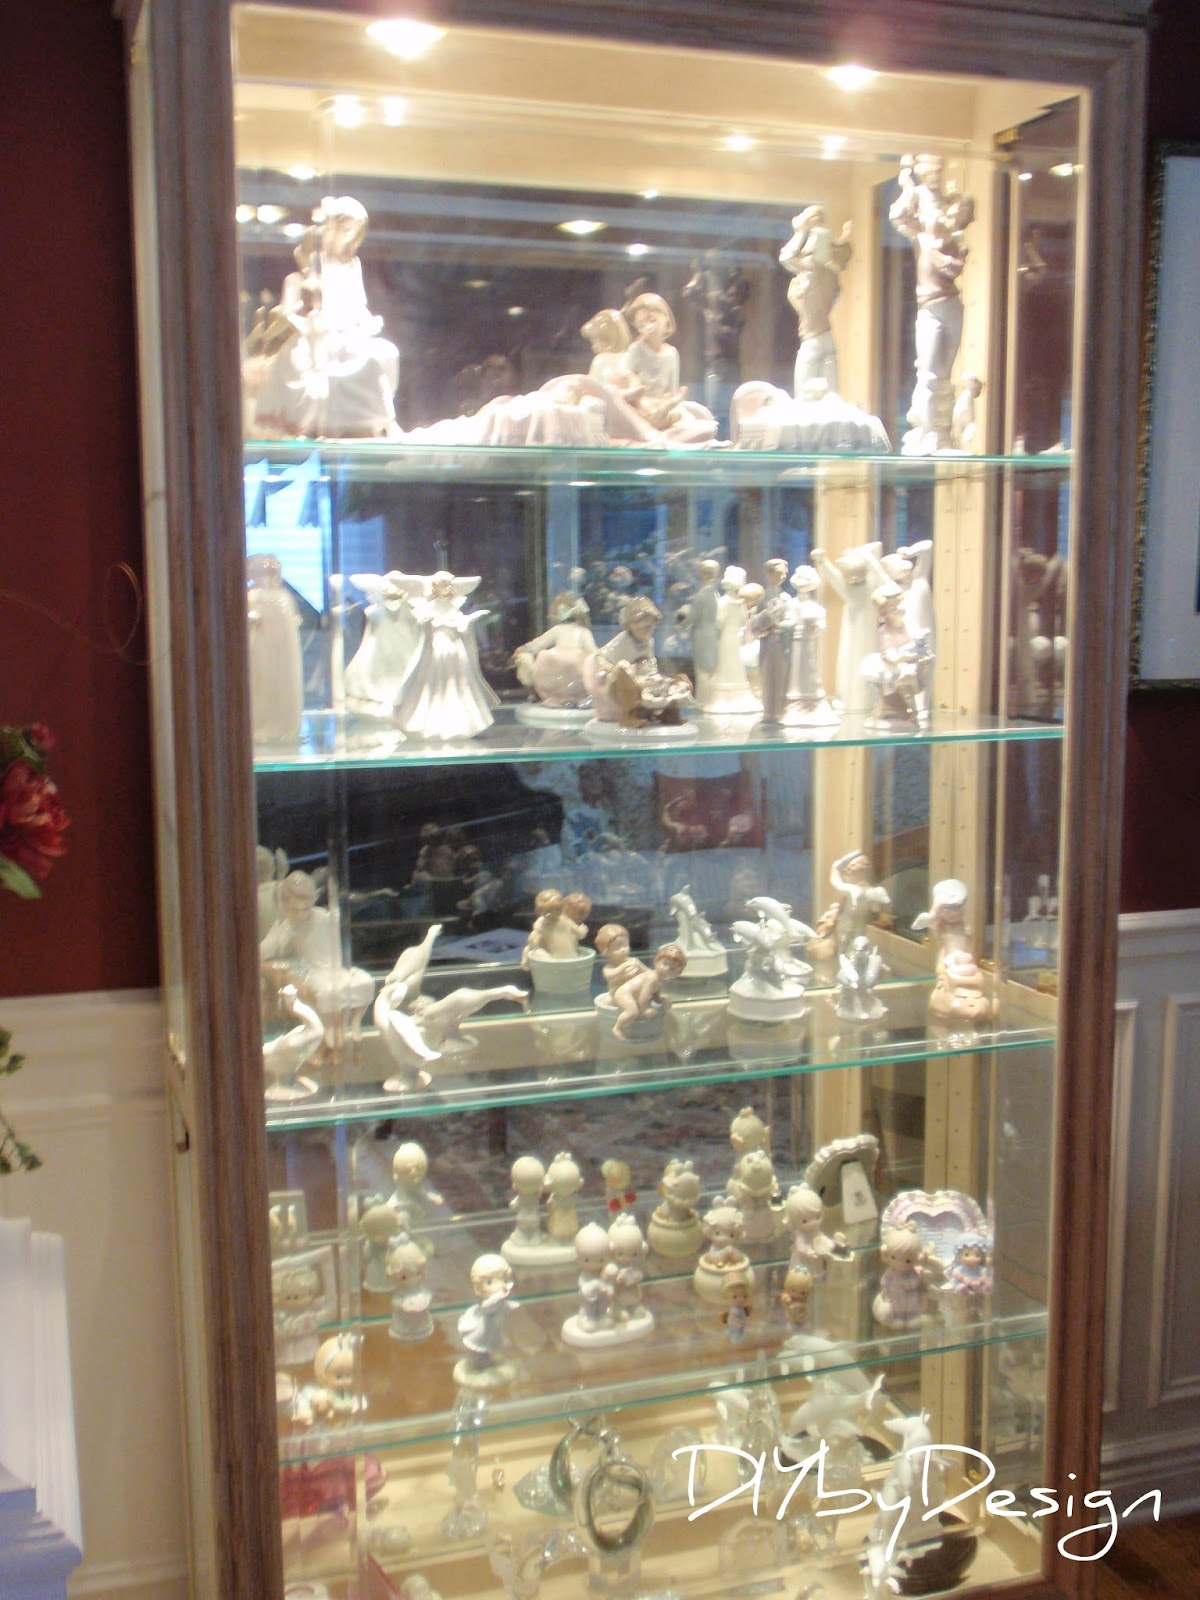 #8A7241 DIY By Design: Lladro Porcelain with 1200x1600 px of Brand New Glass Display Cabinet Diy 16001200 pic @ avoidforclosure.info